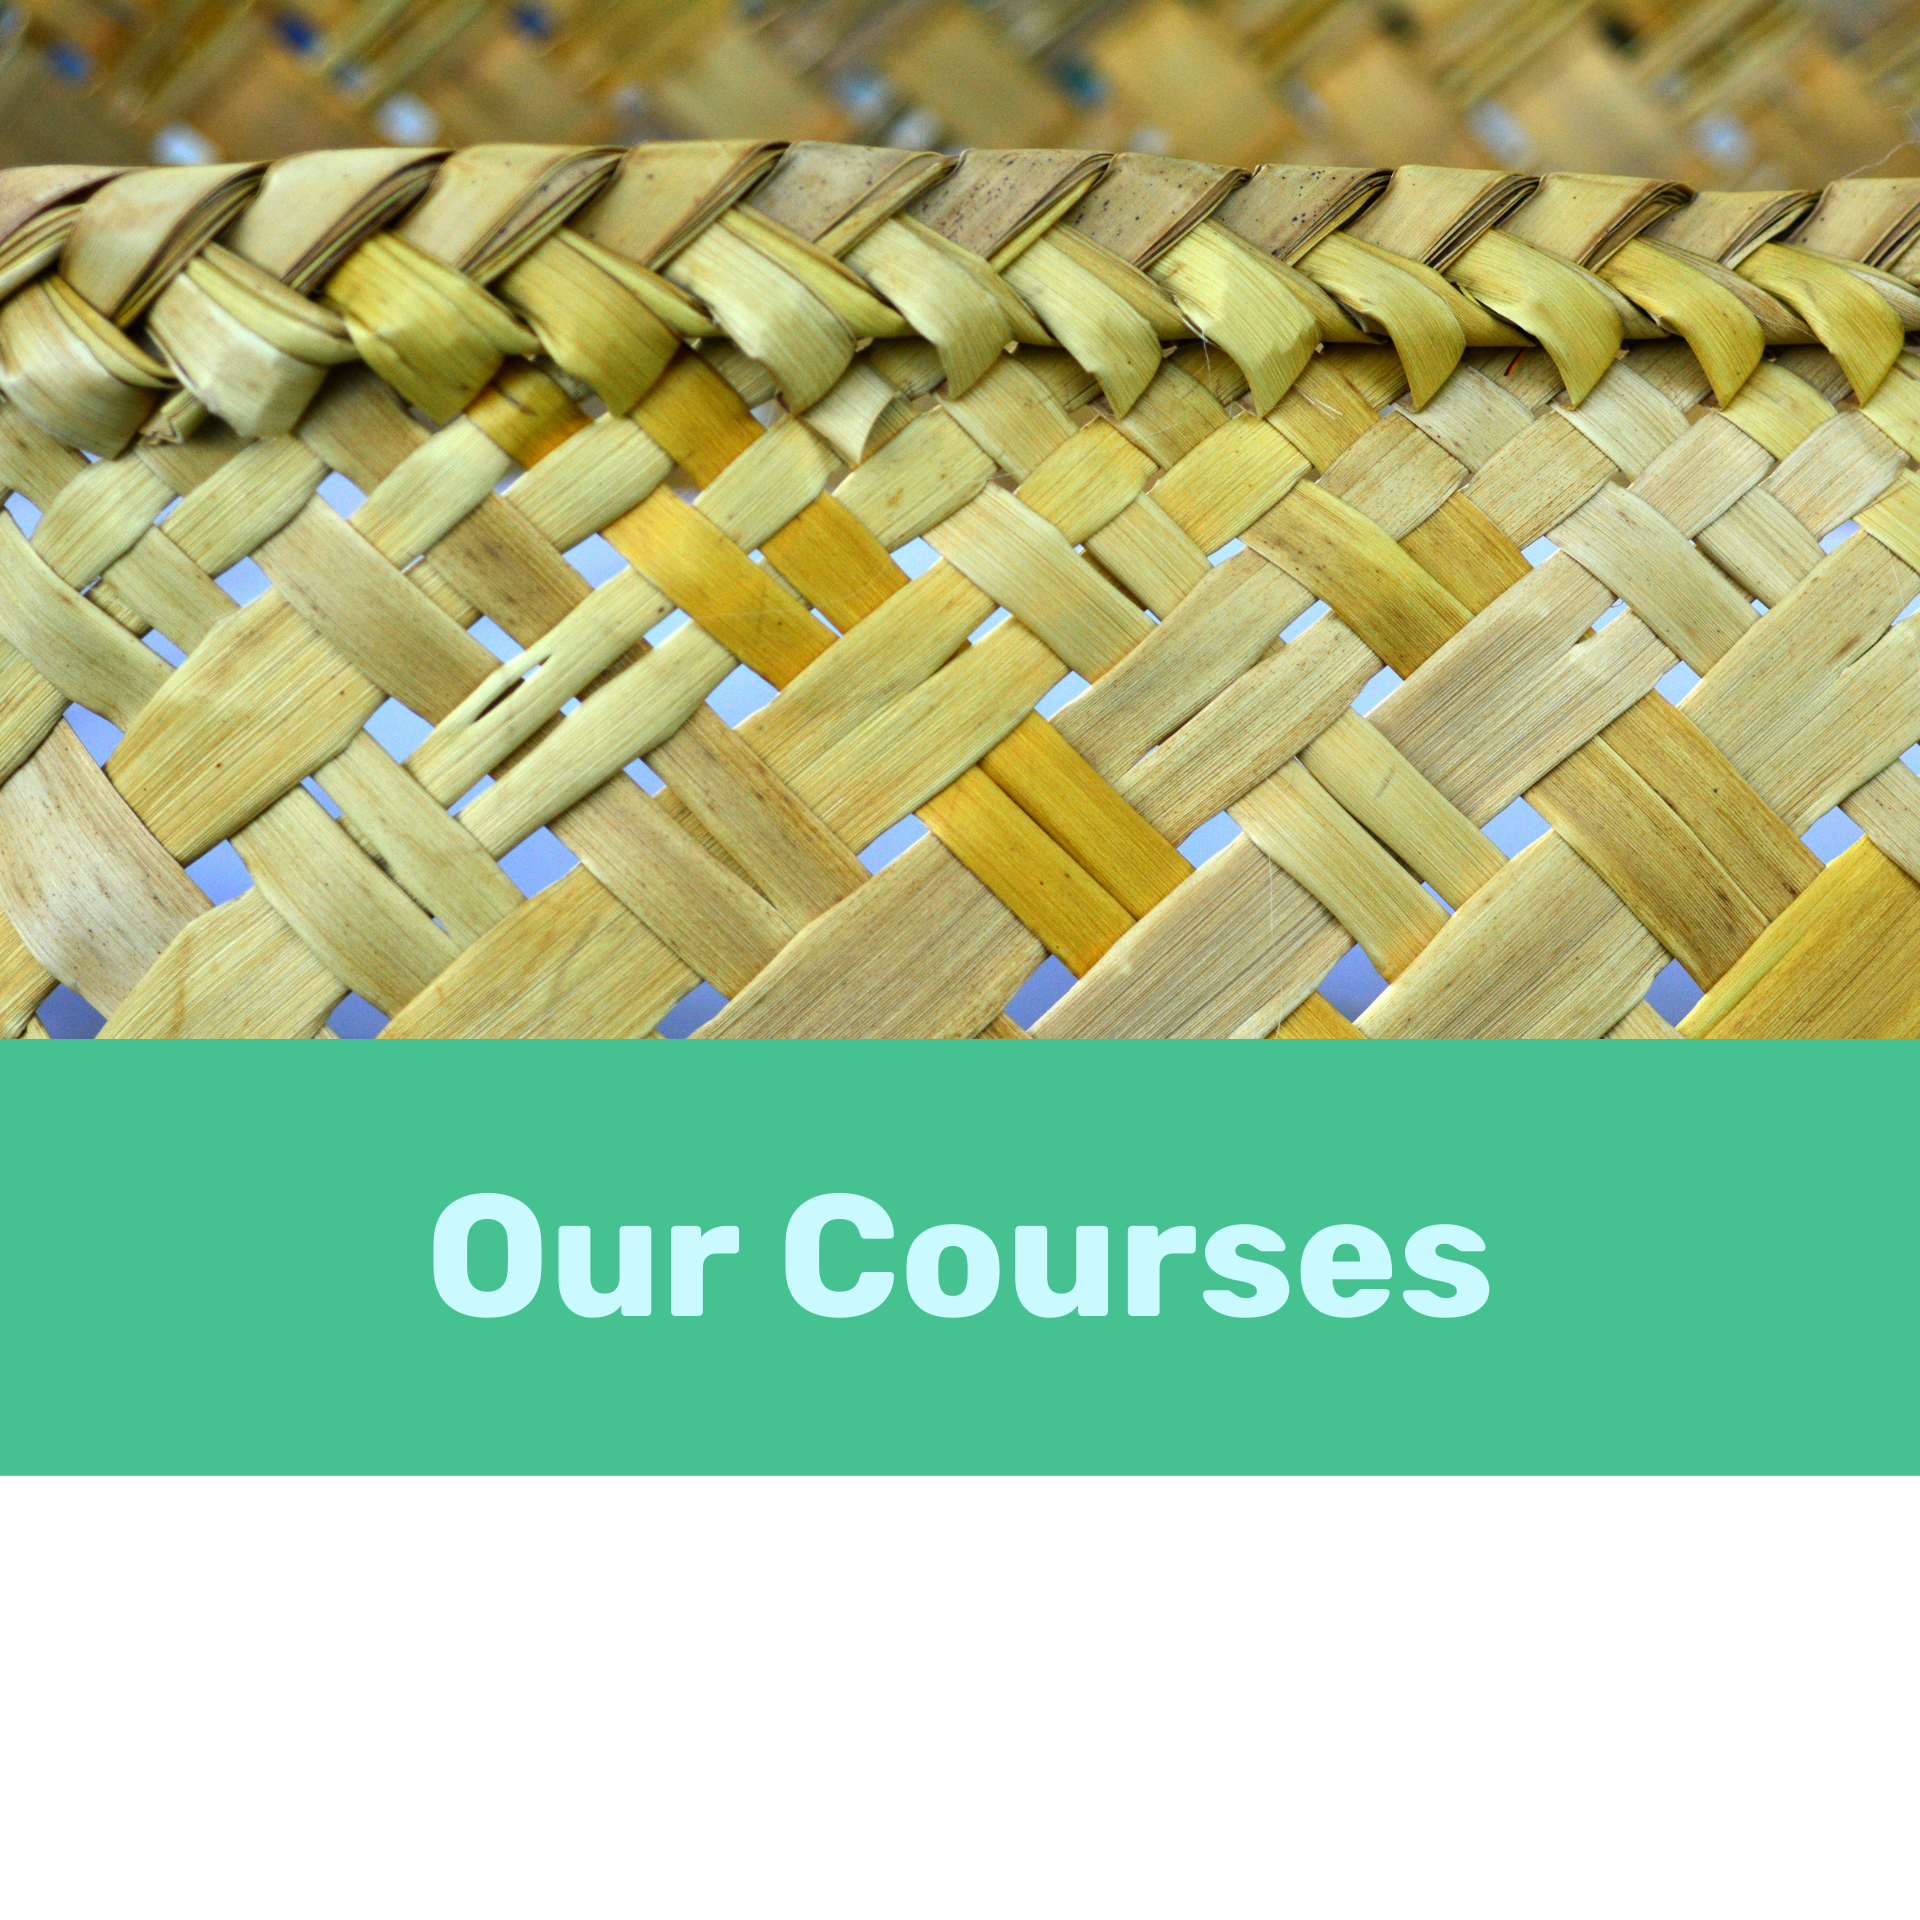 Our Course